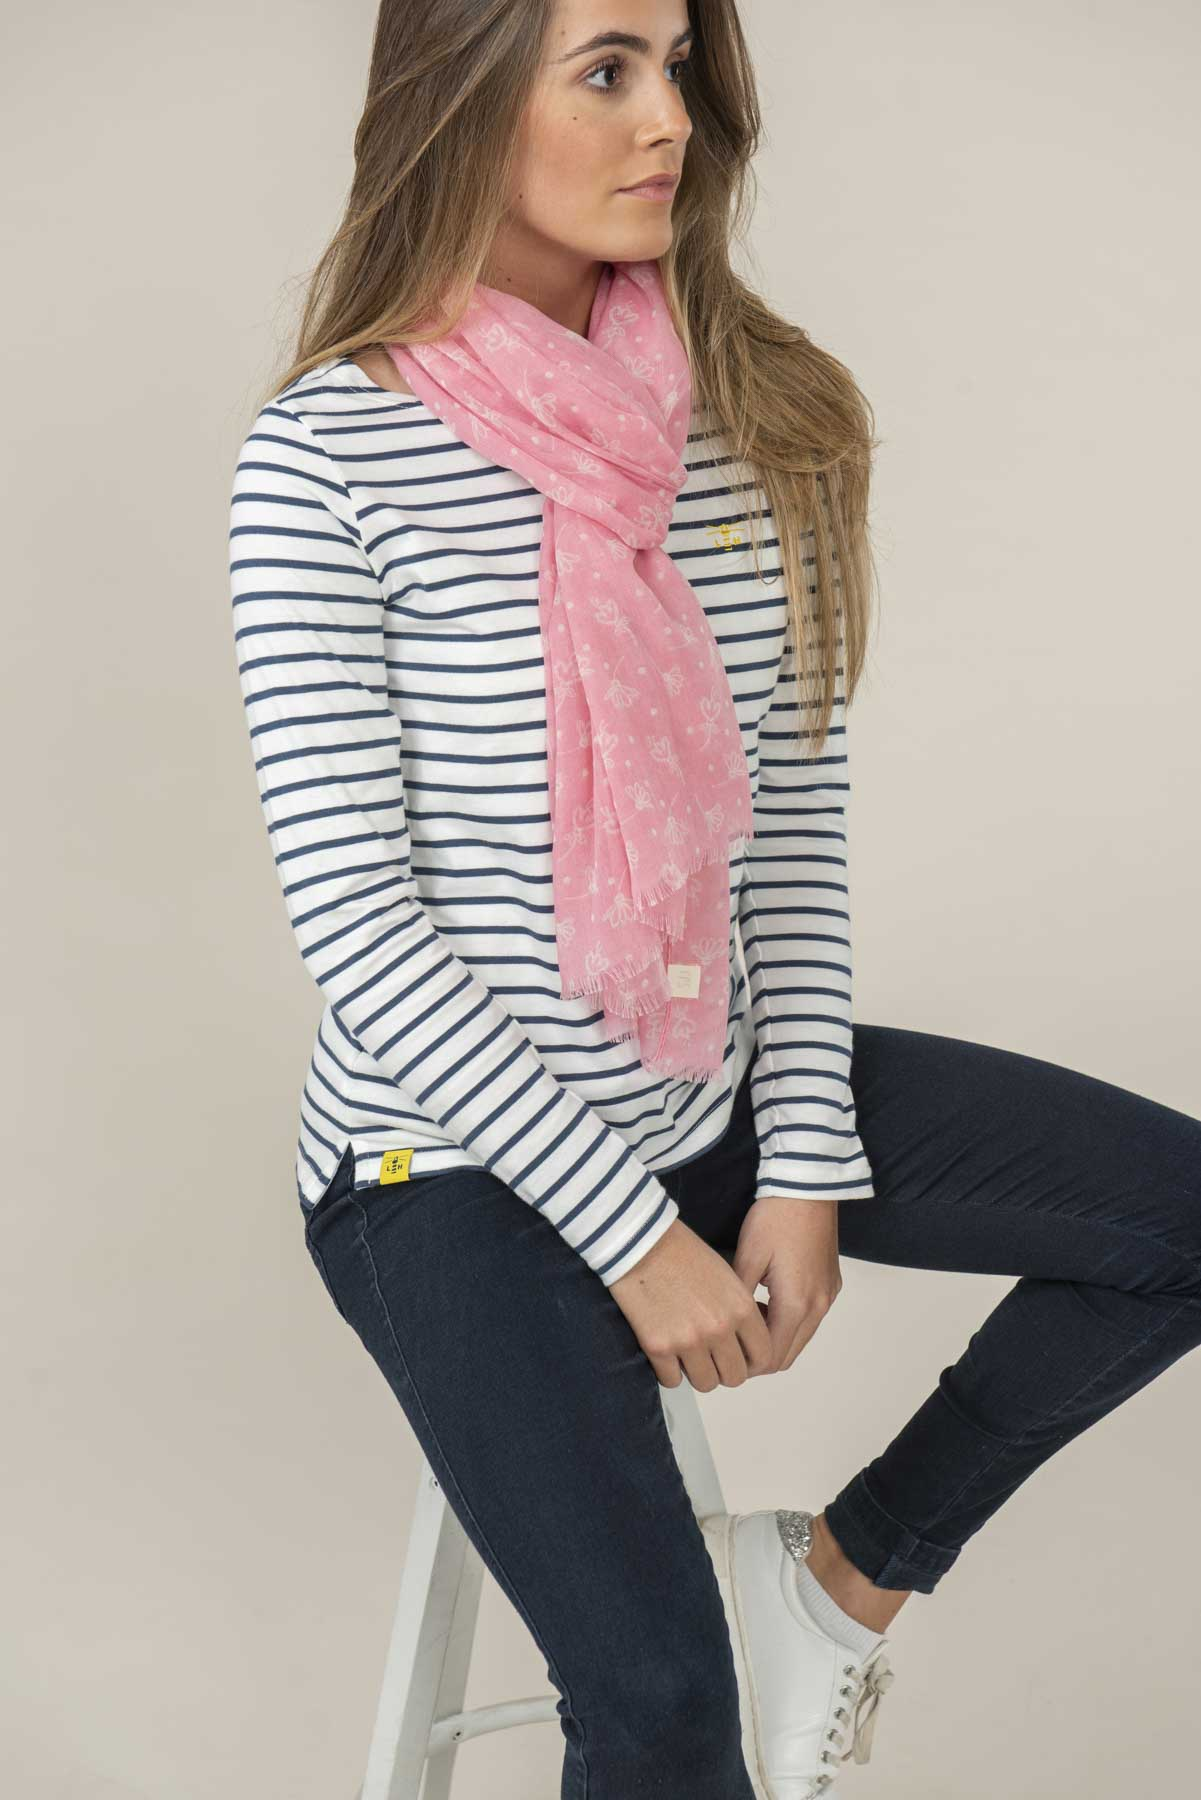 Women's Accessories - Pink patterned scarf